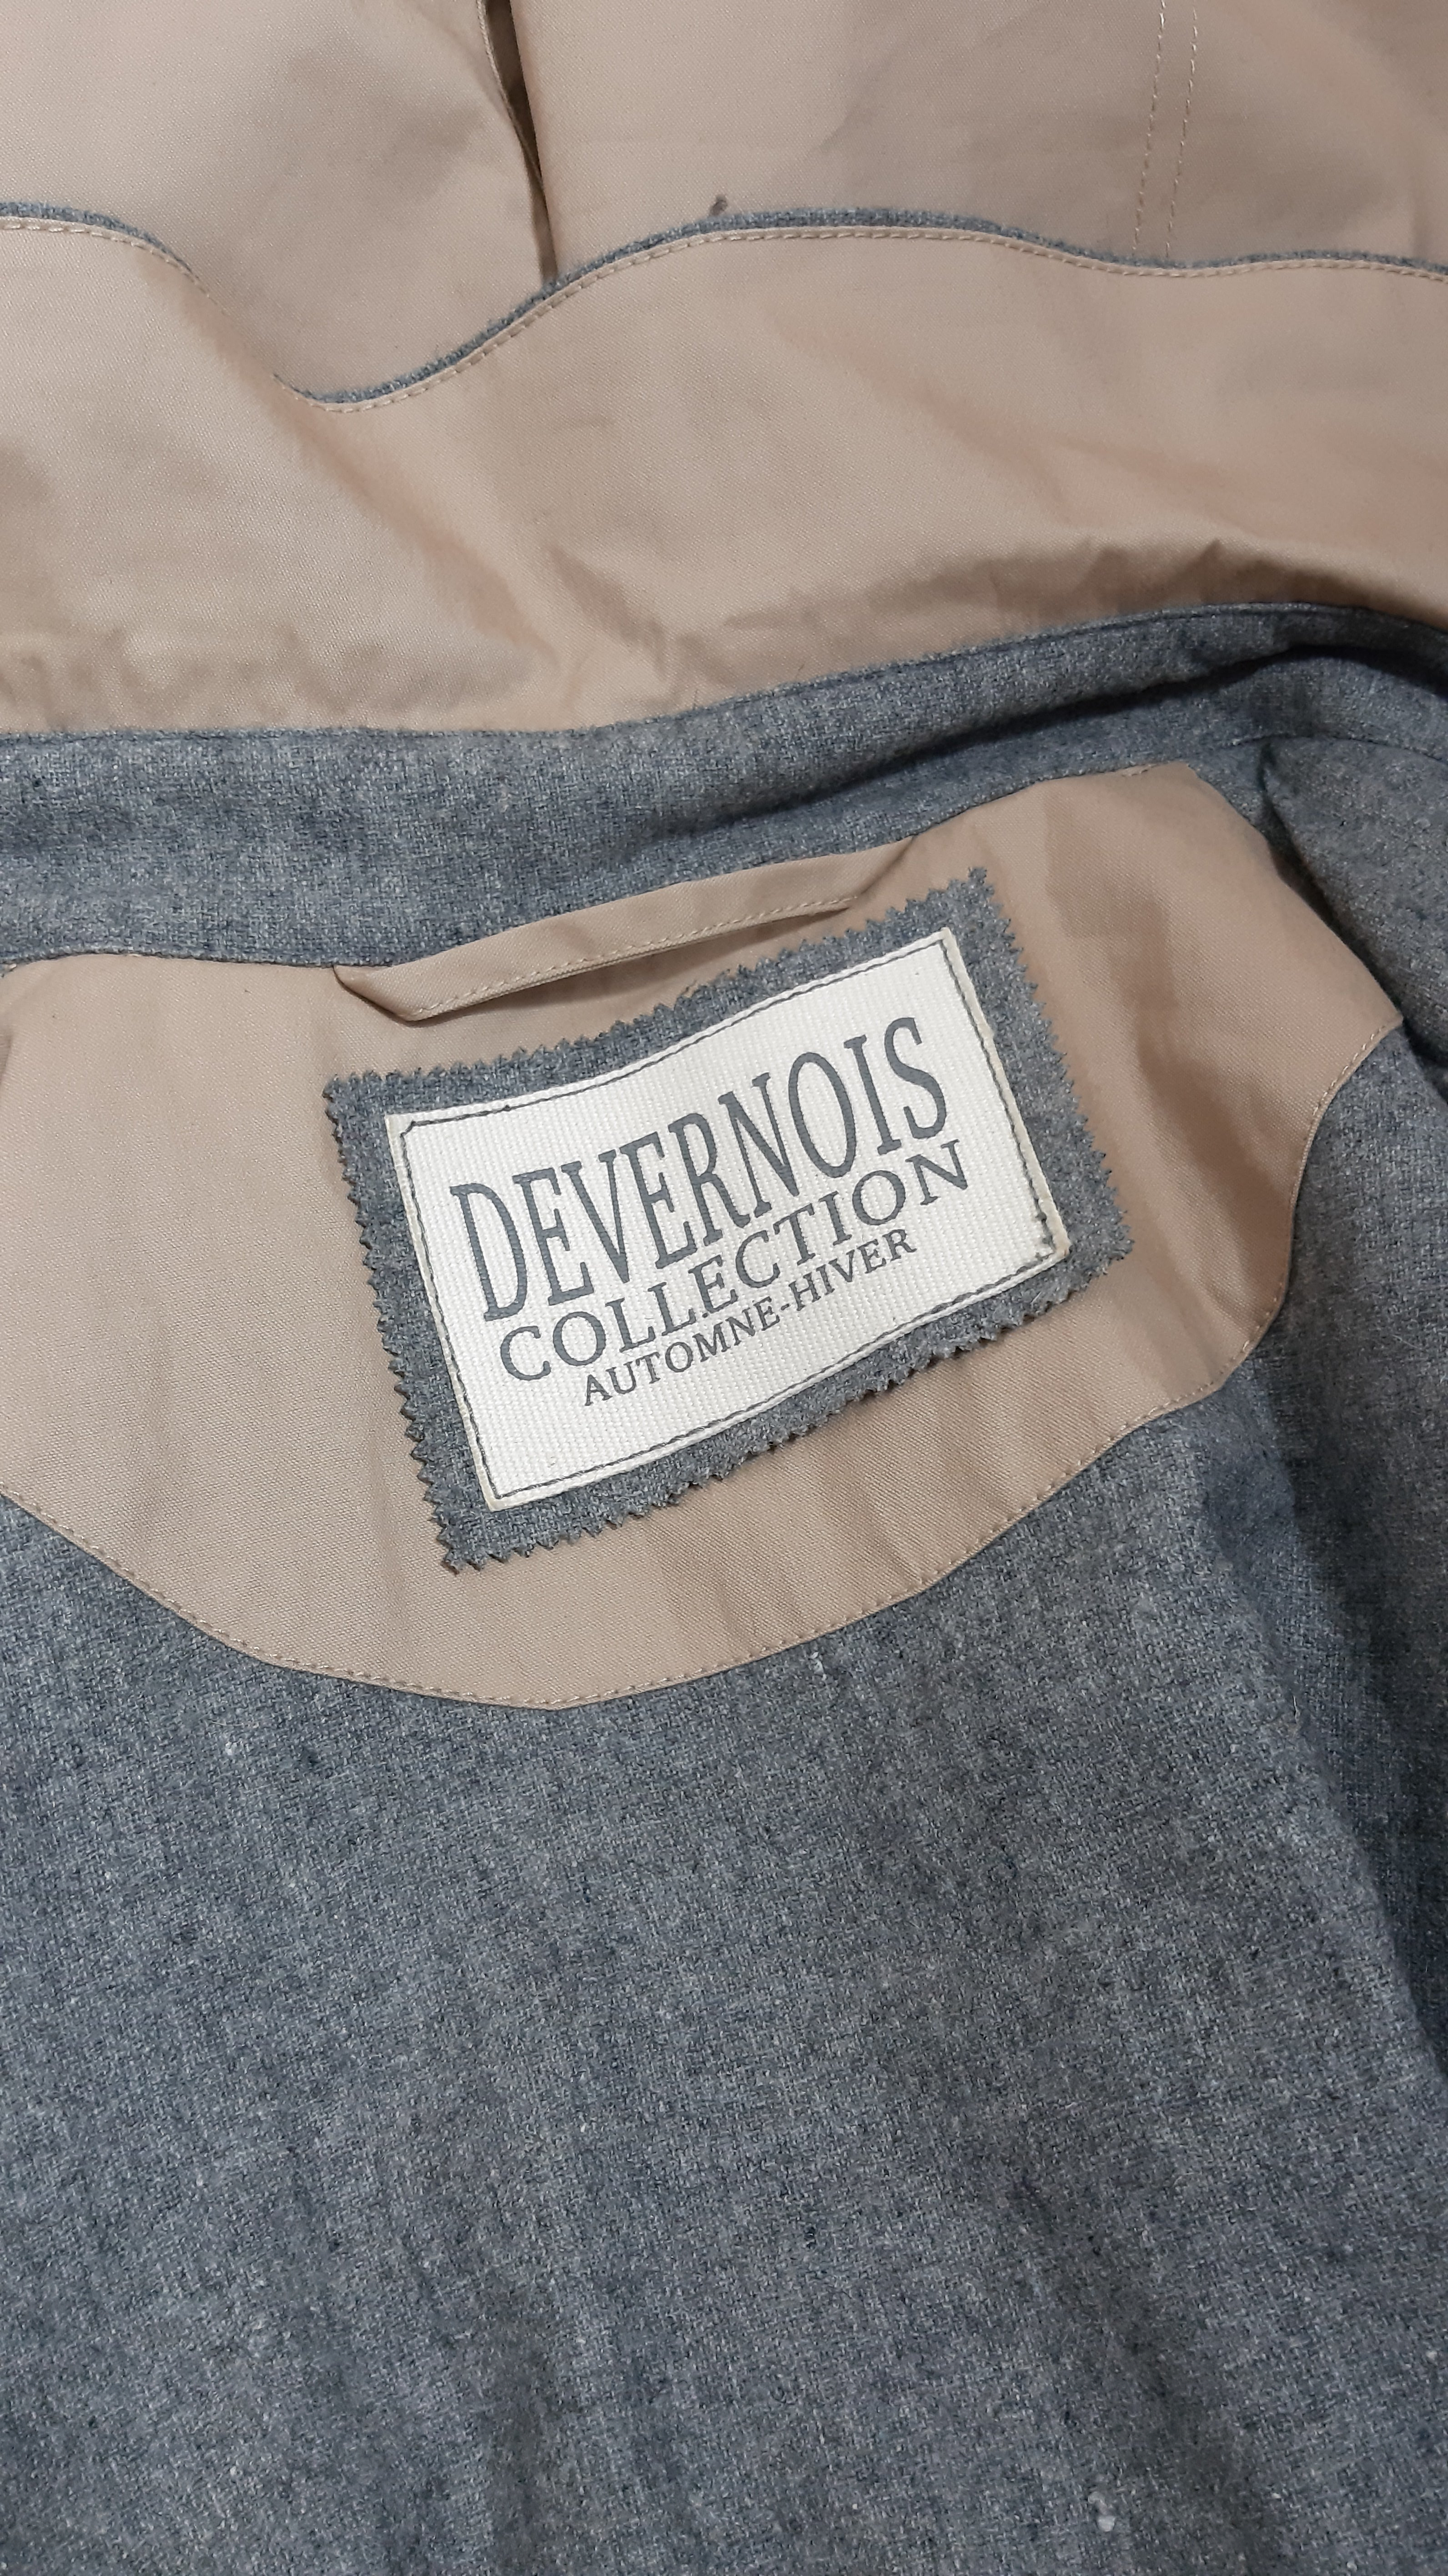 DEVERNOIS COLLECTION Automne-Hiver Mixed Textured and Colored Beige/Grey Trench Coat